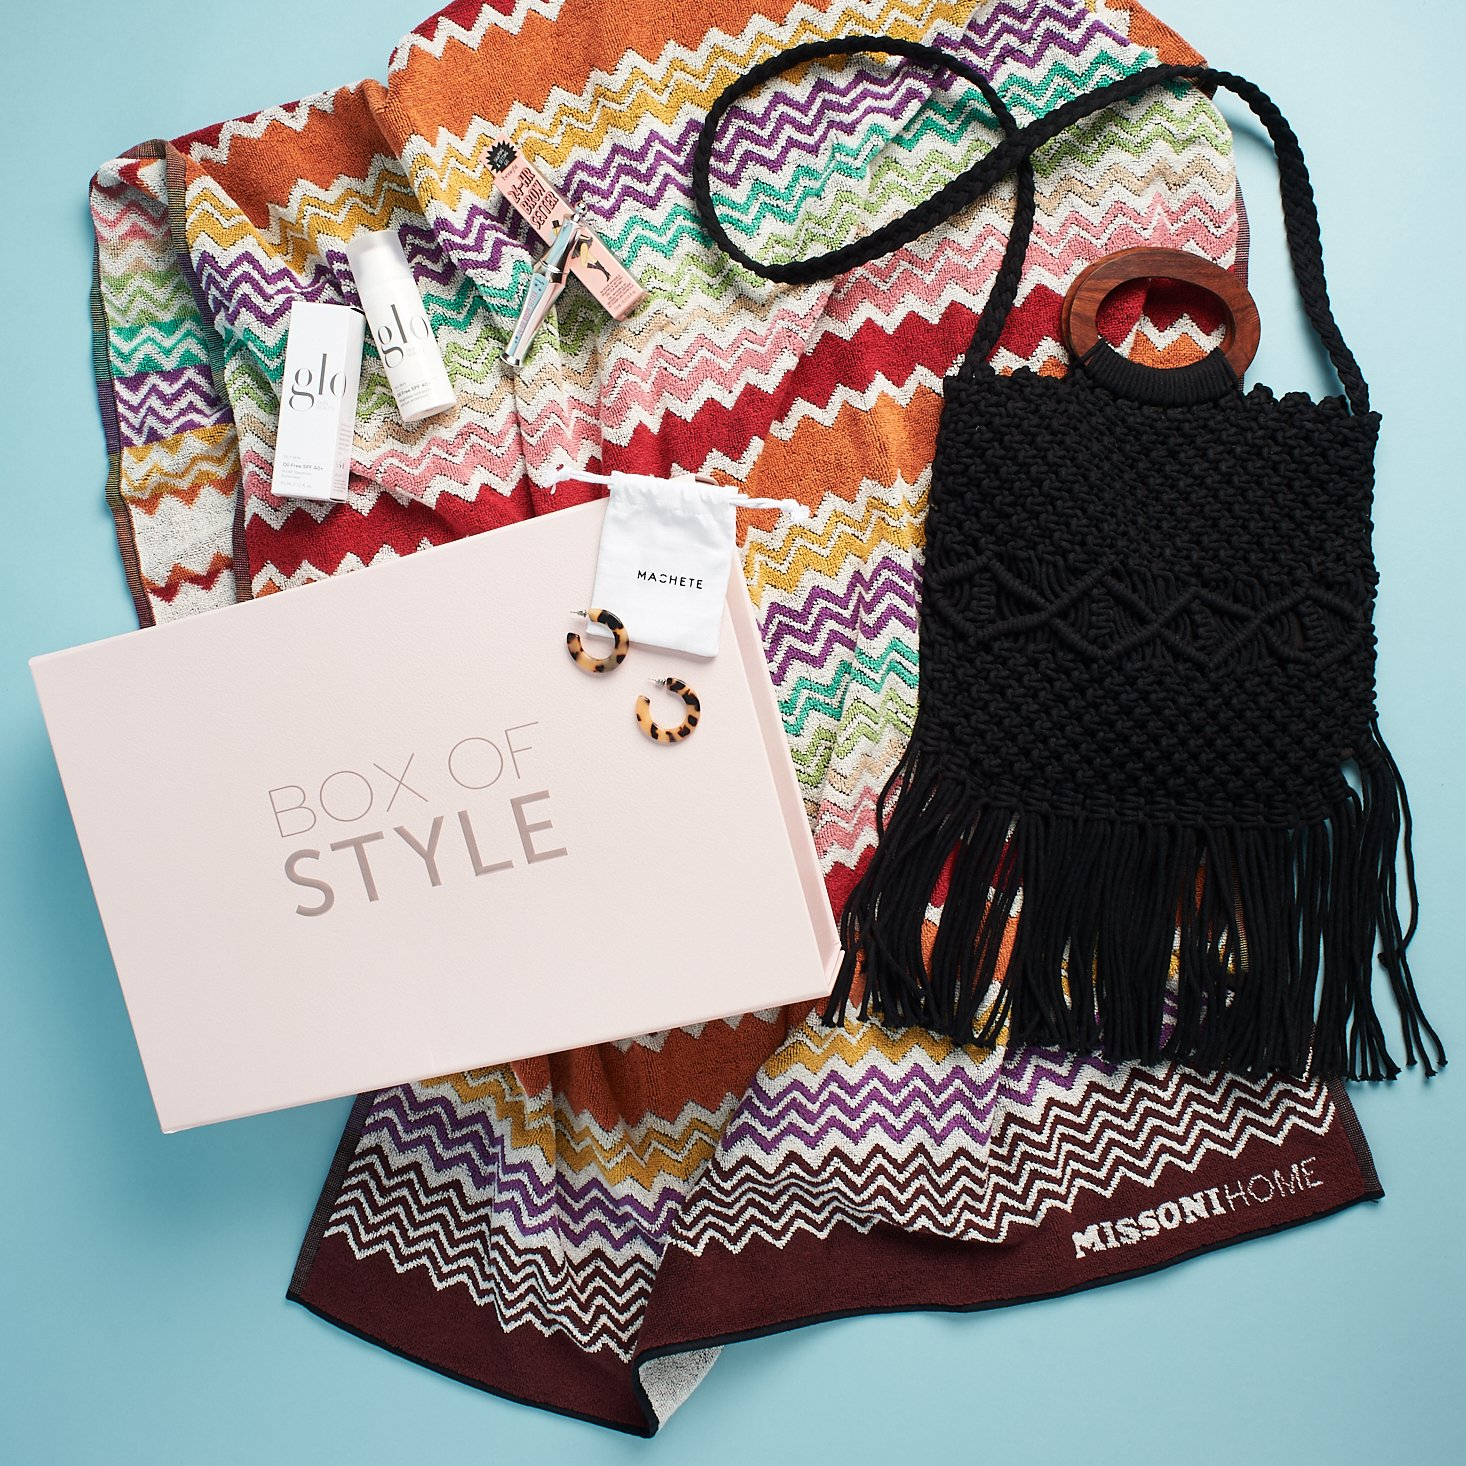 Rachel Zoe Box of Style Summer 2019 Review + $25 Coupon